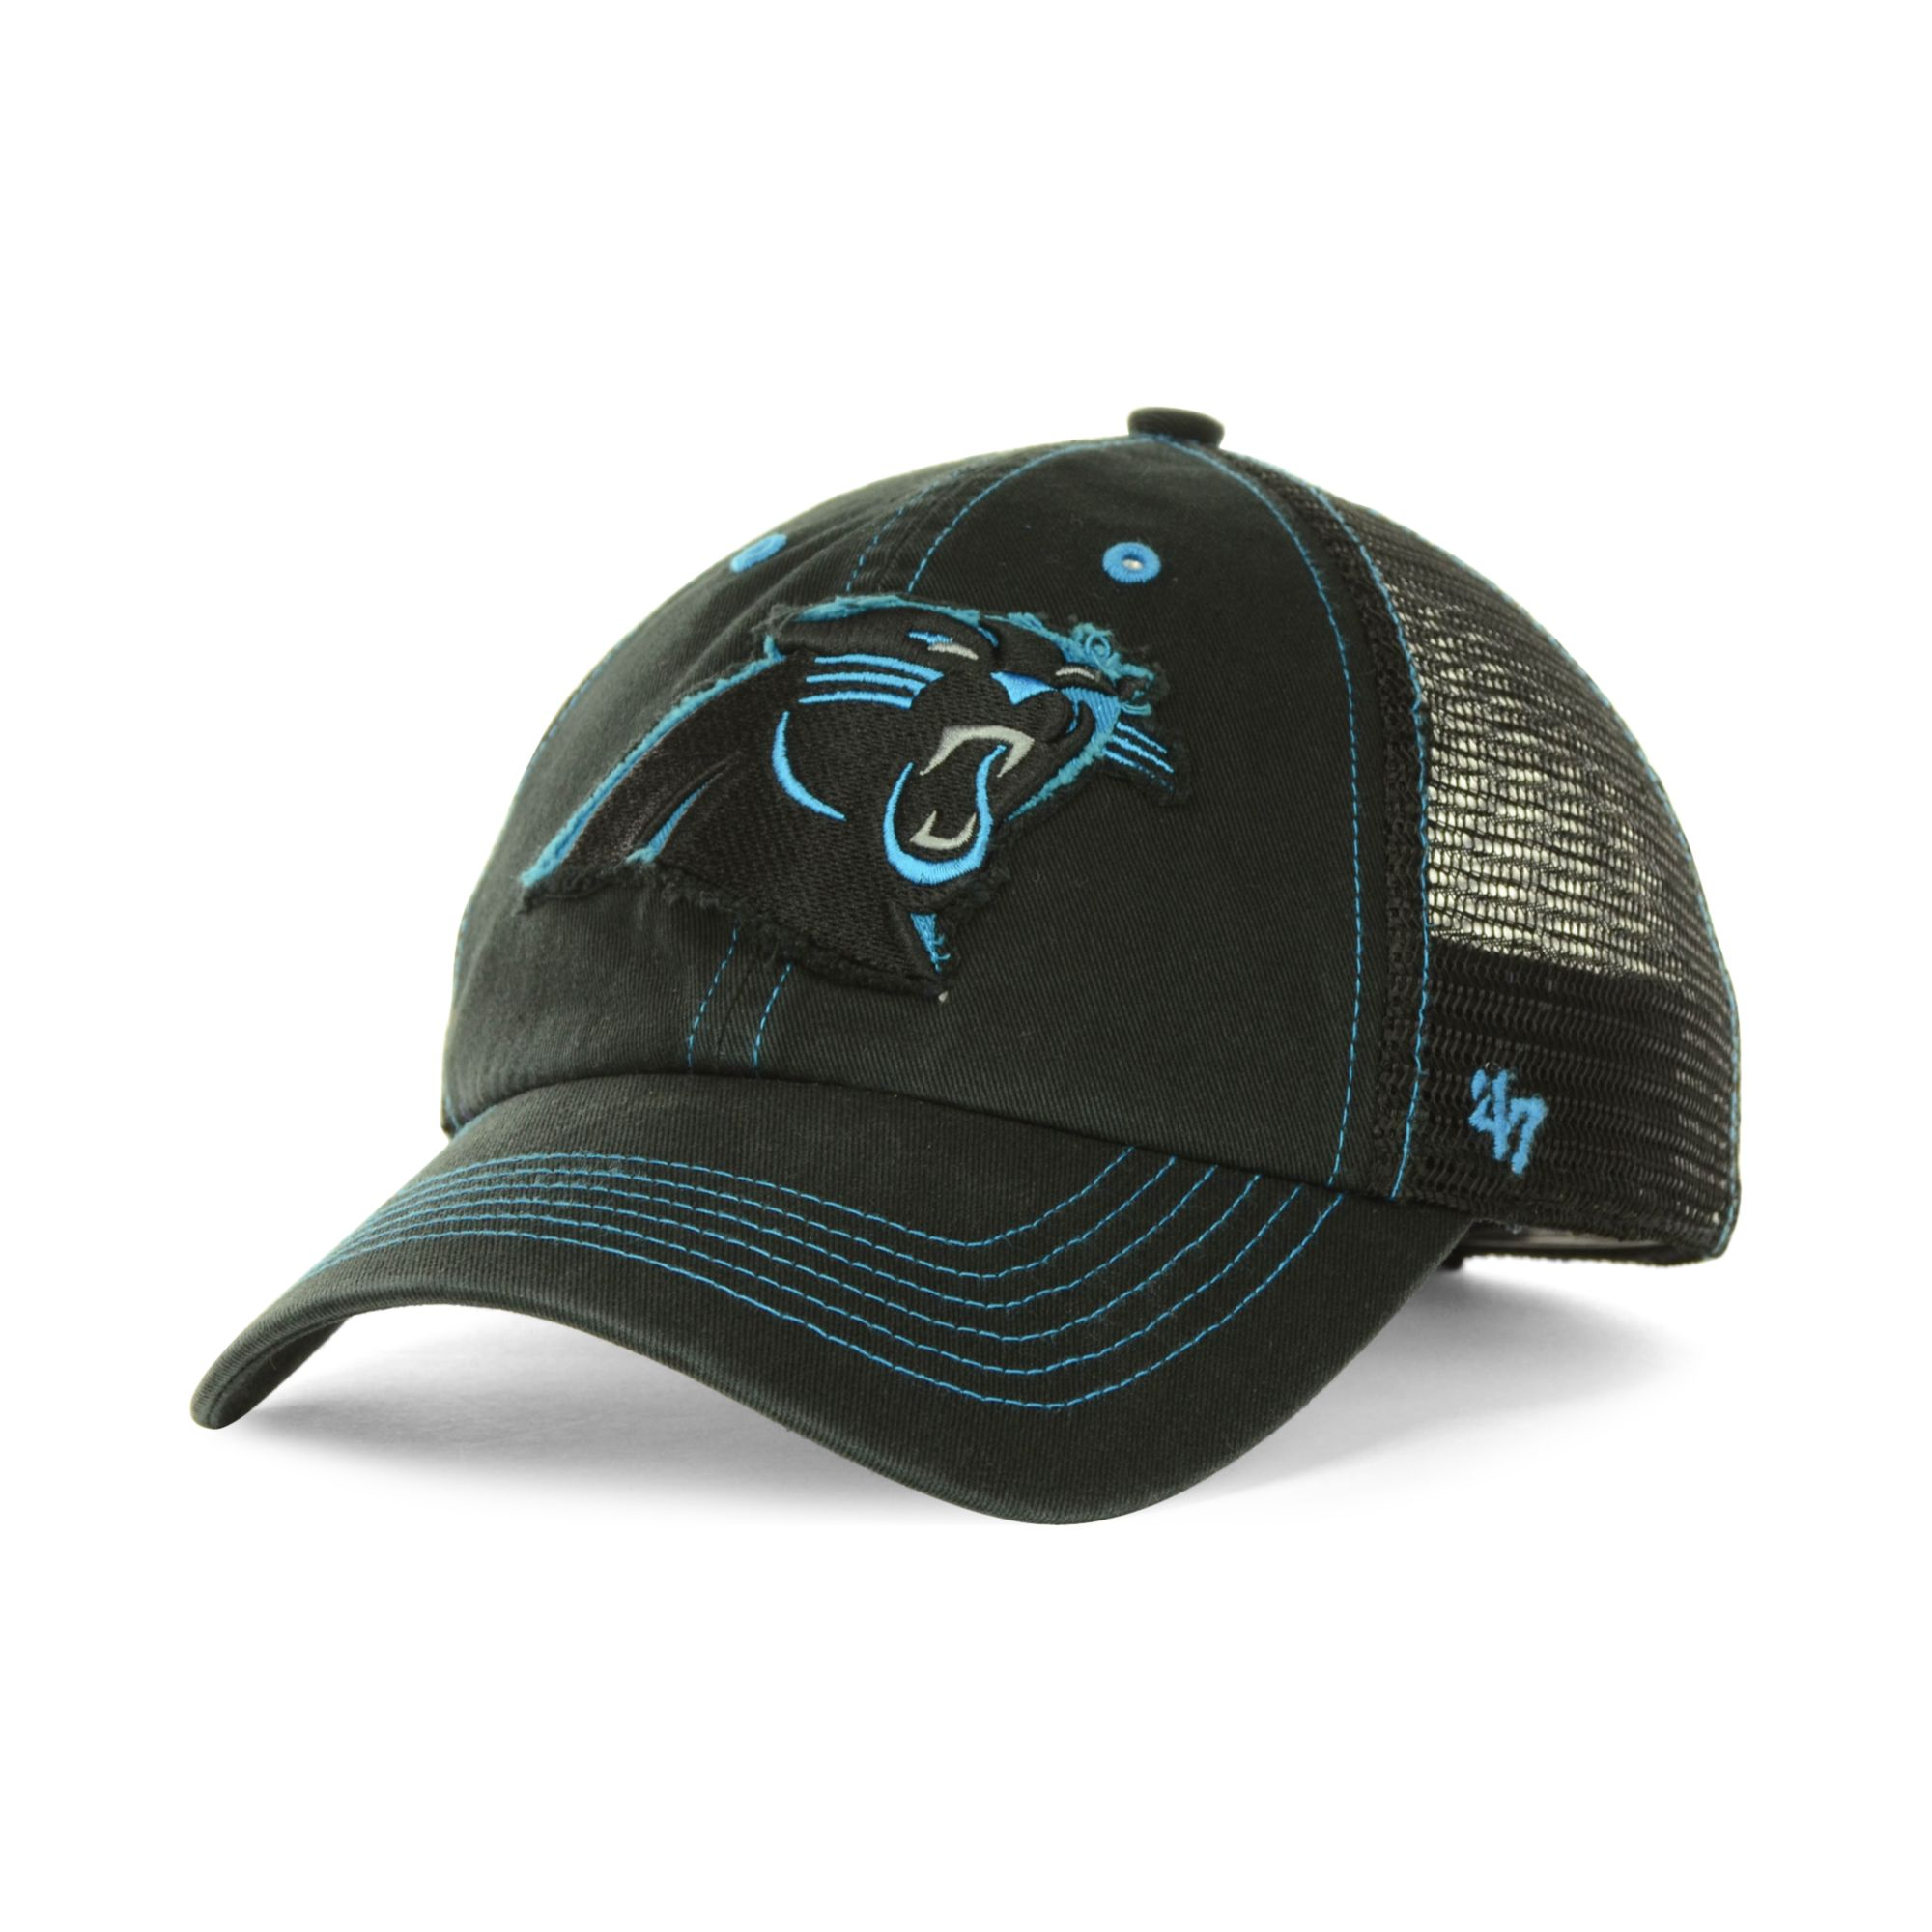 ... trucker hat fbbee cccd1 coupon lyst 47 brand carolina panthers flexbone  hat in black for men 05a44 c2db8 ... 764d64852